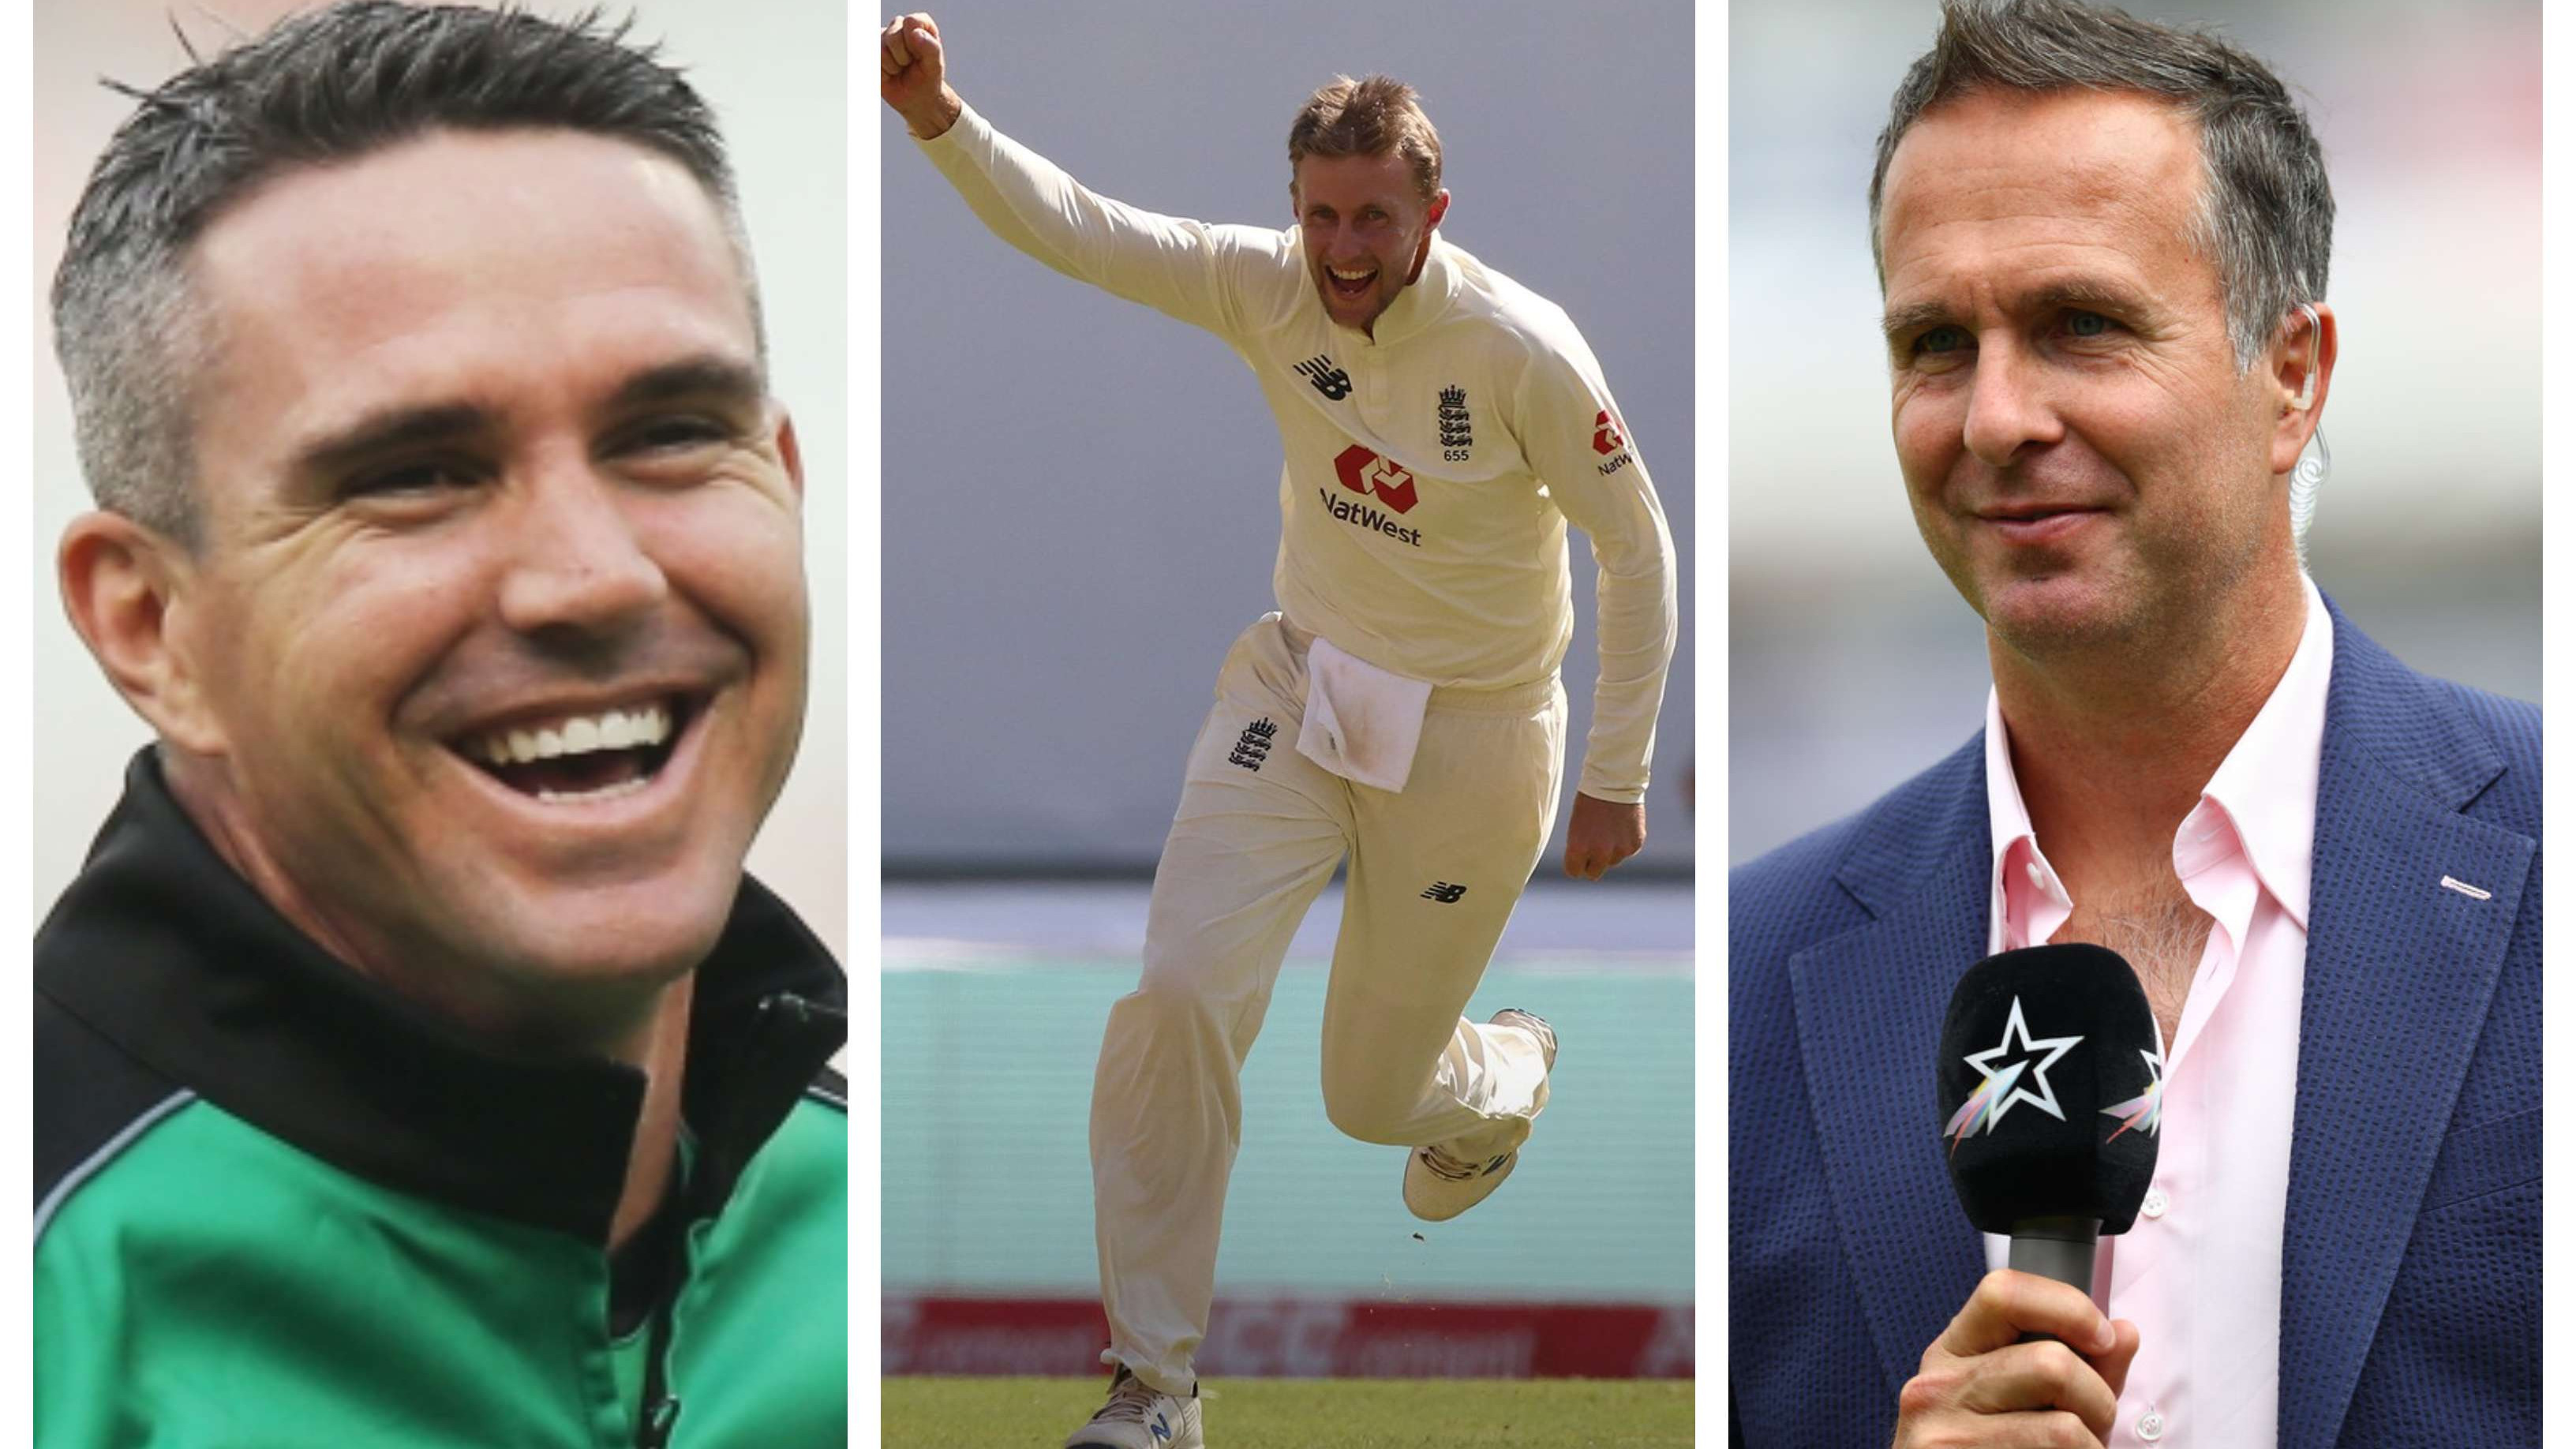 IND v ENG 2021: Cricket fraternity reacts as Joe Root claims maiden 5-fer to bowl out India for 145 in 1st innings